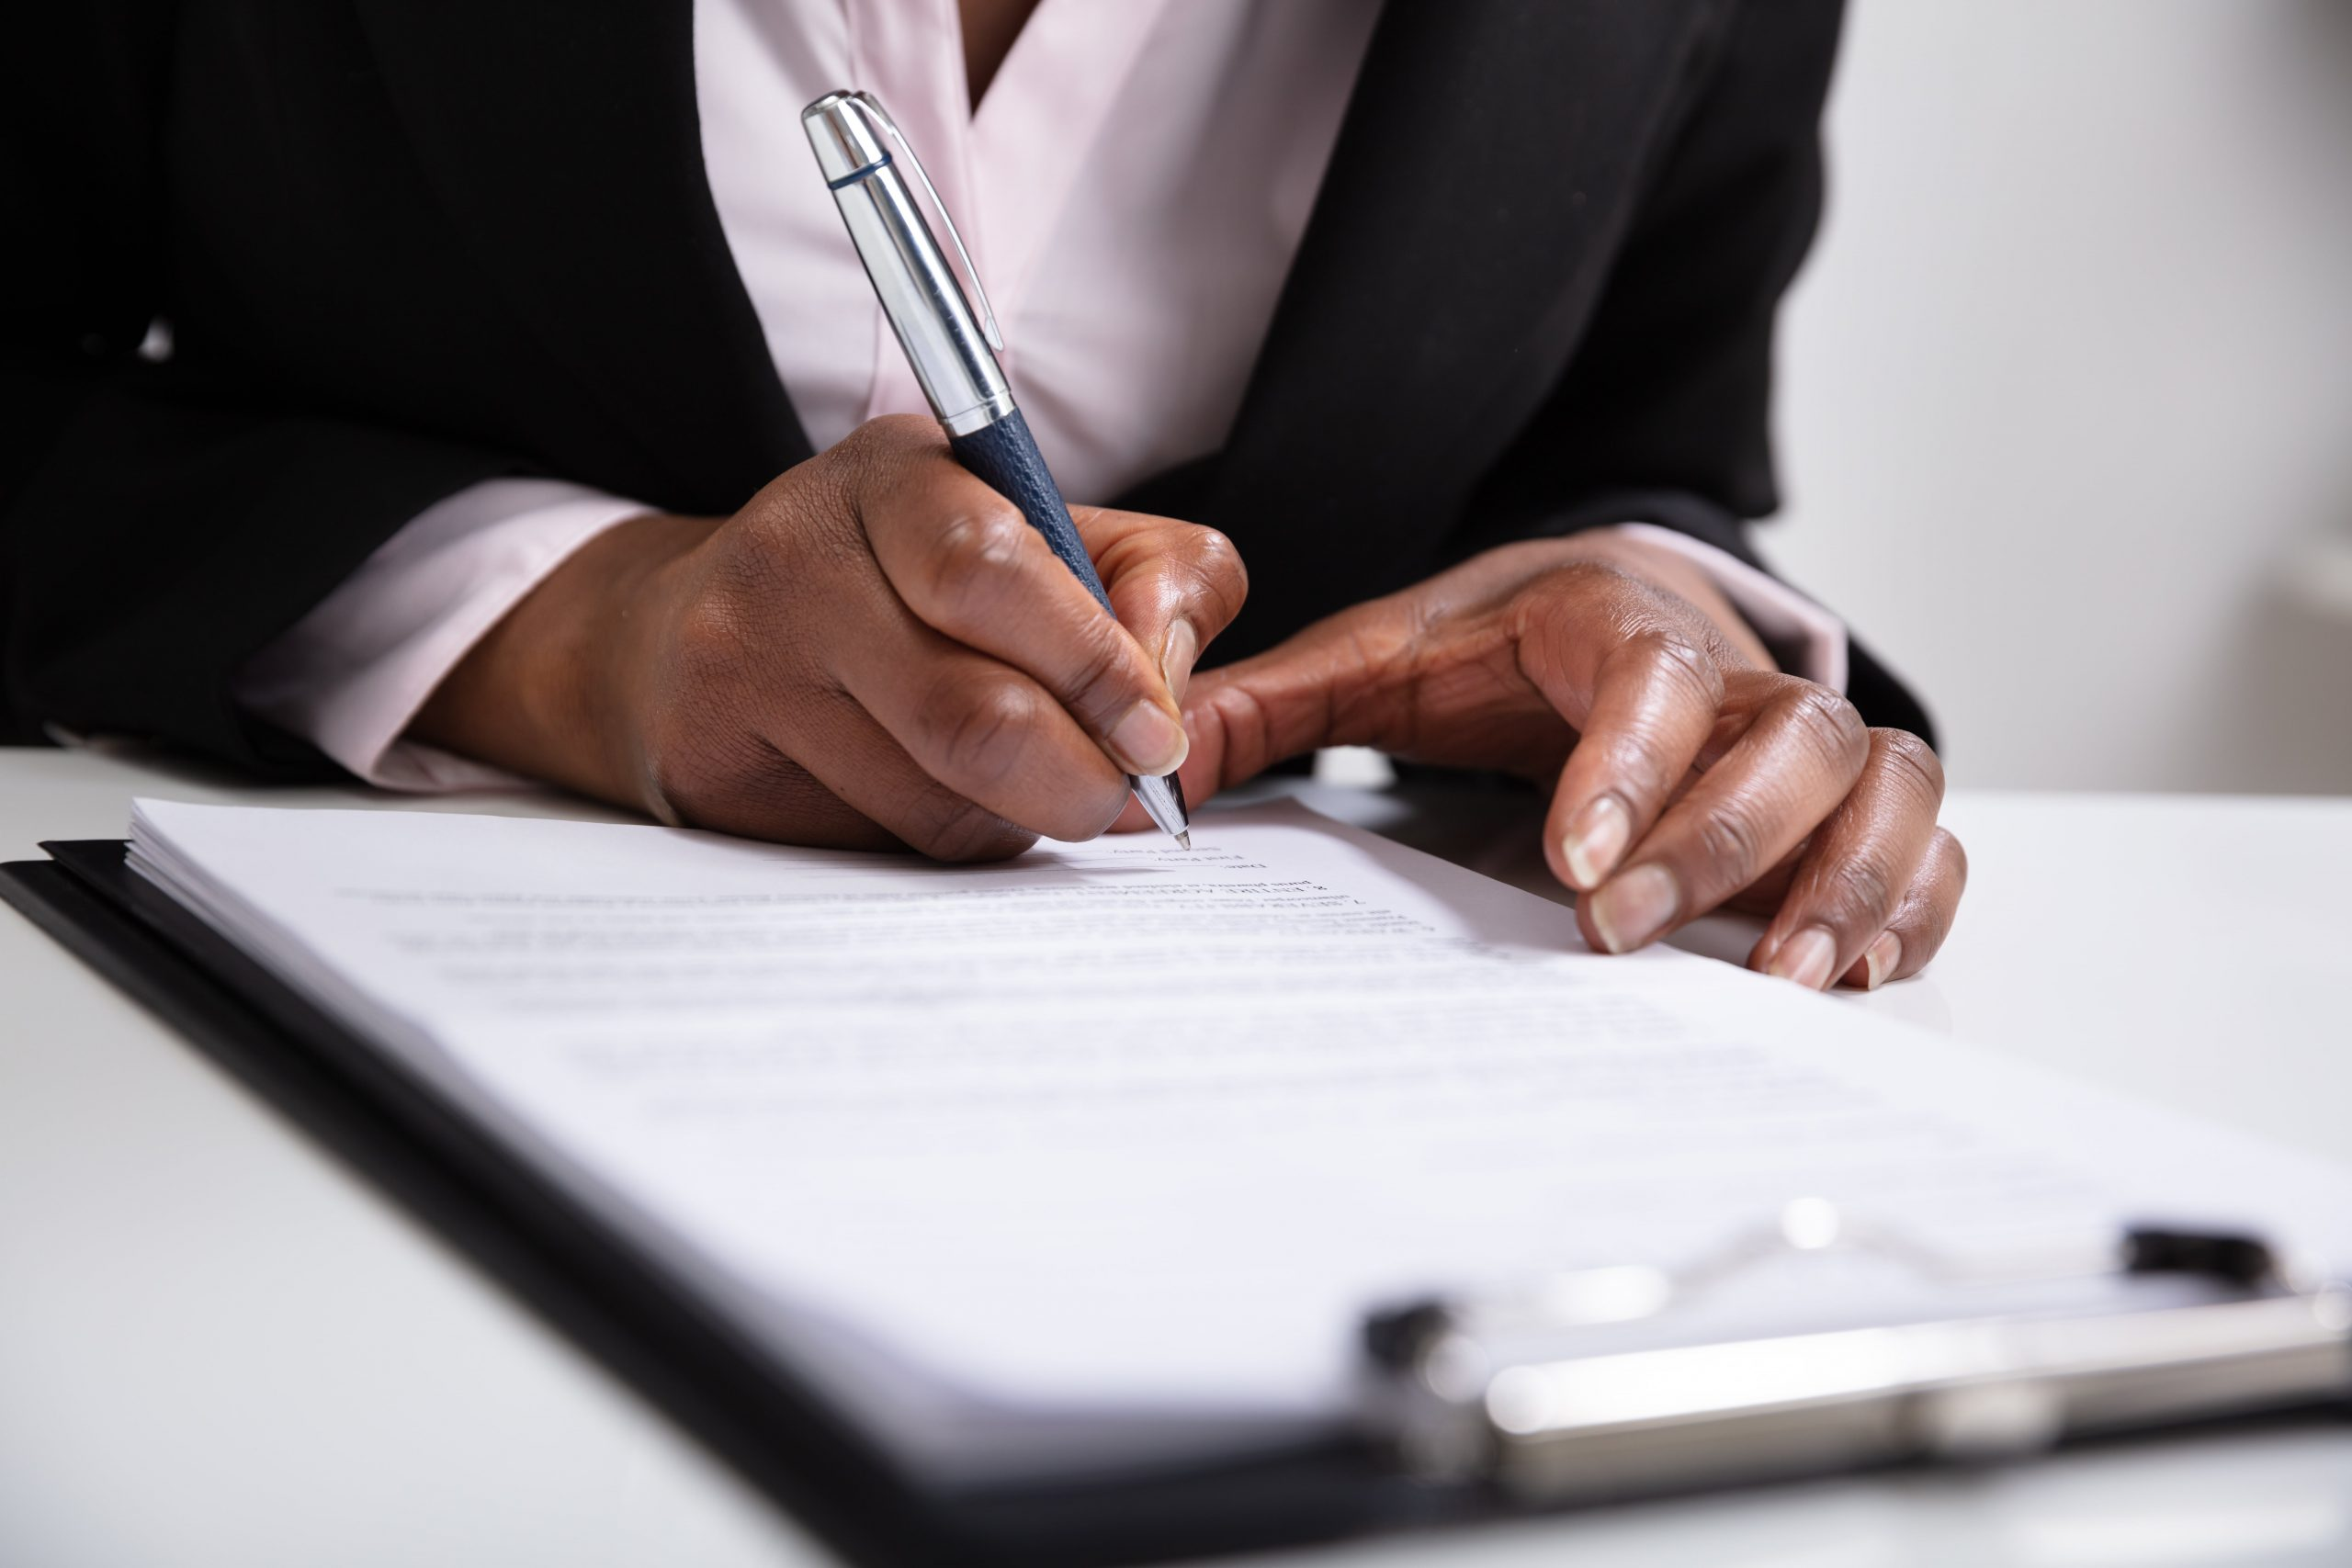 Focus on woman's hands as she signs documents on a clipboard